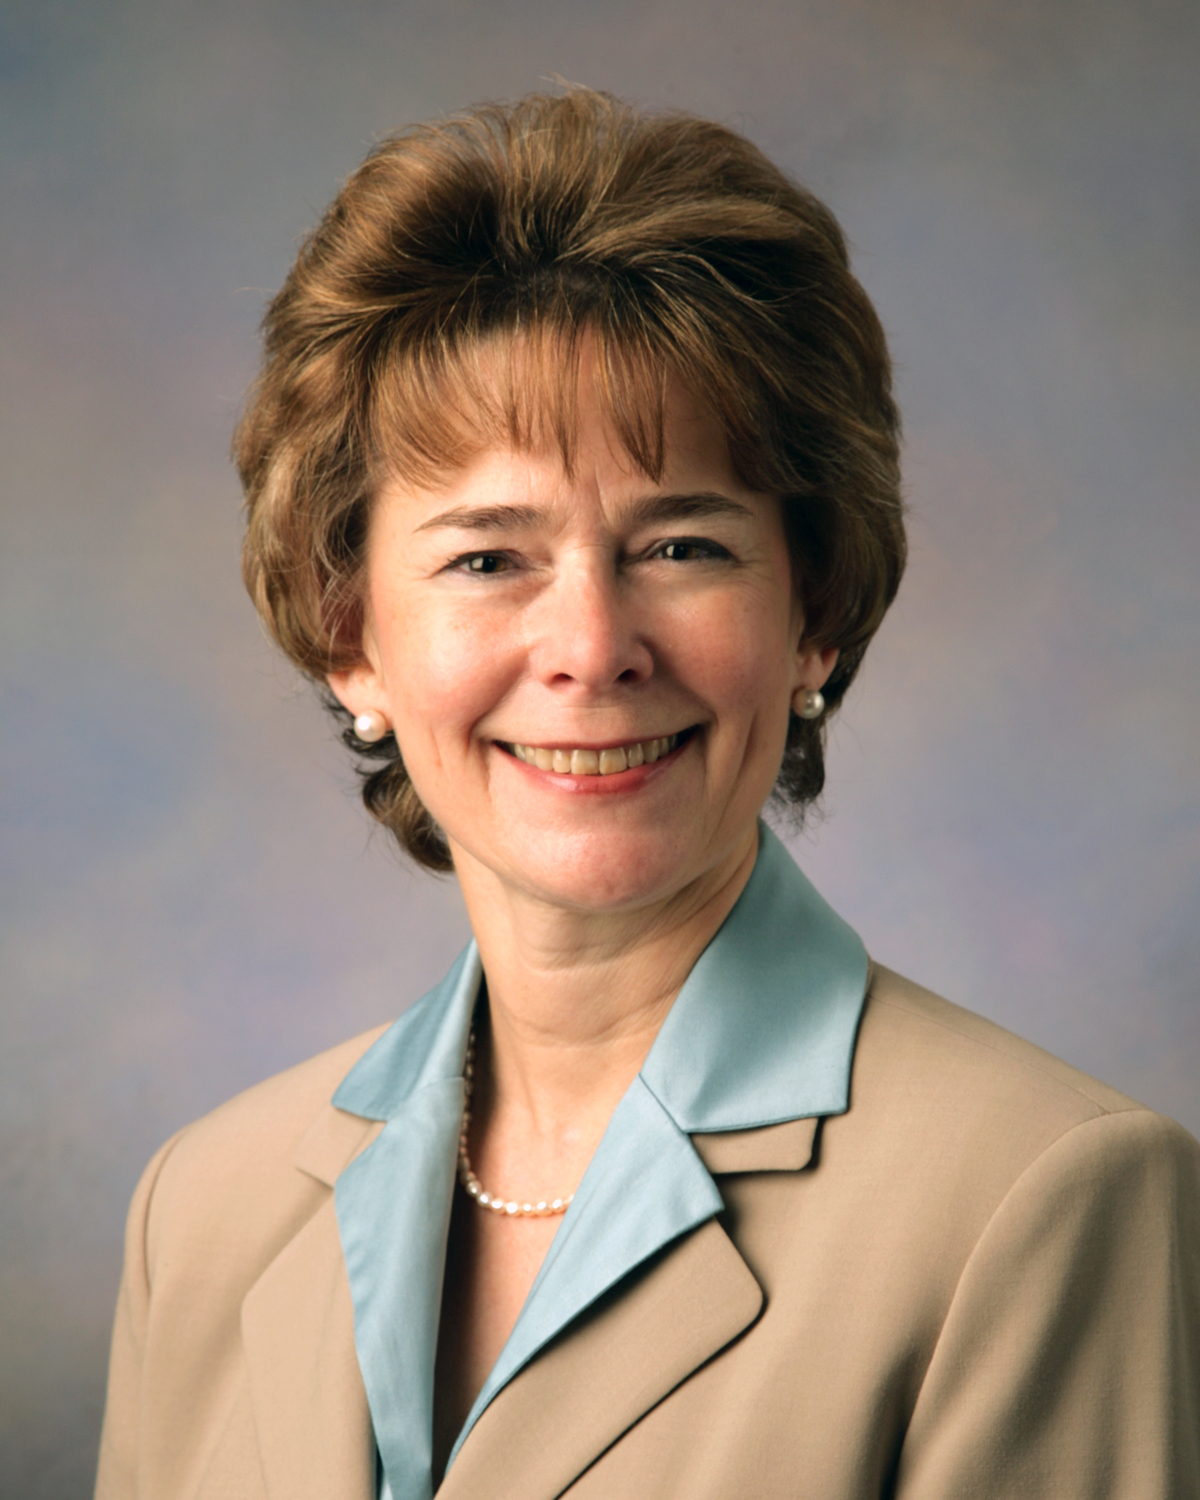 Dr. Nancy Mendenhall, Clinical Director at UF Proton Therapy Institute in Jacksonville, Florida.